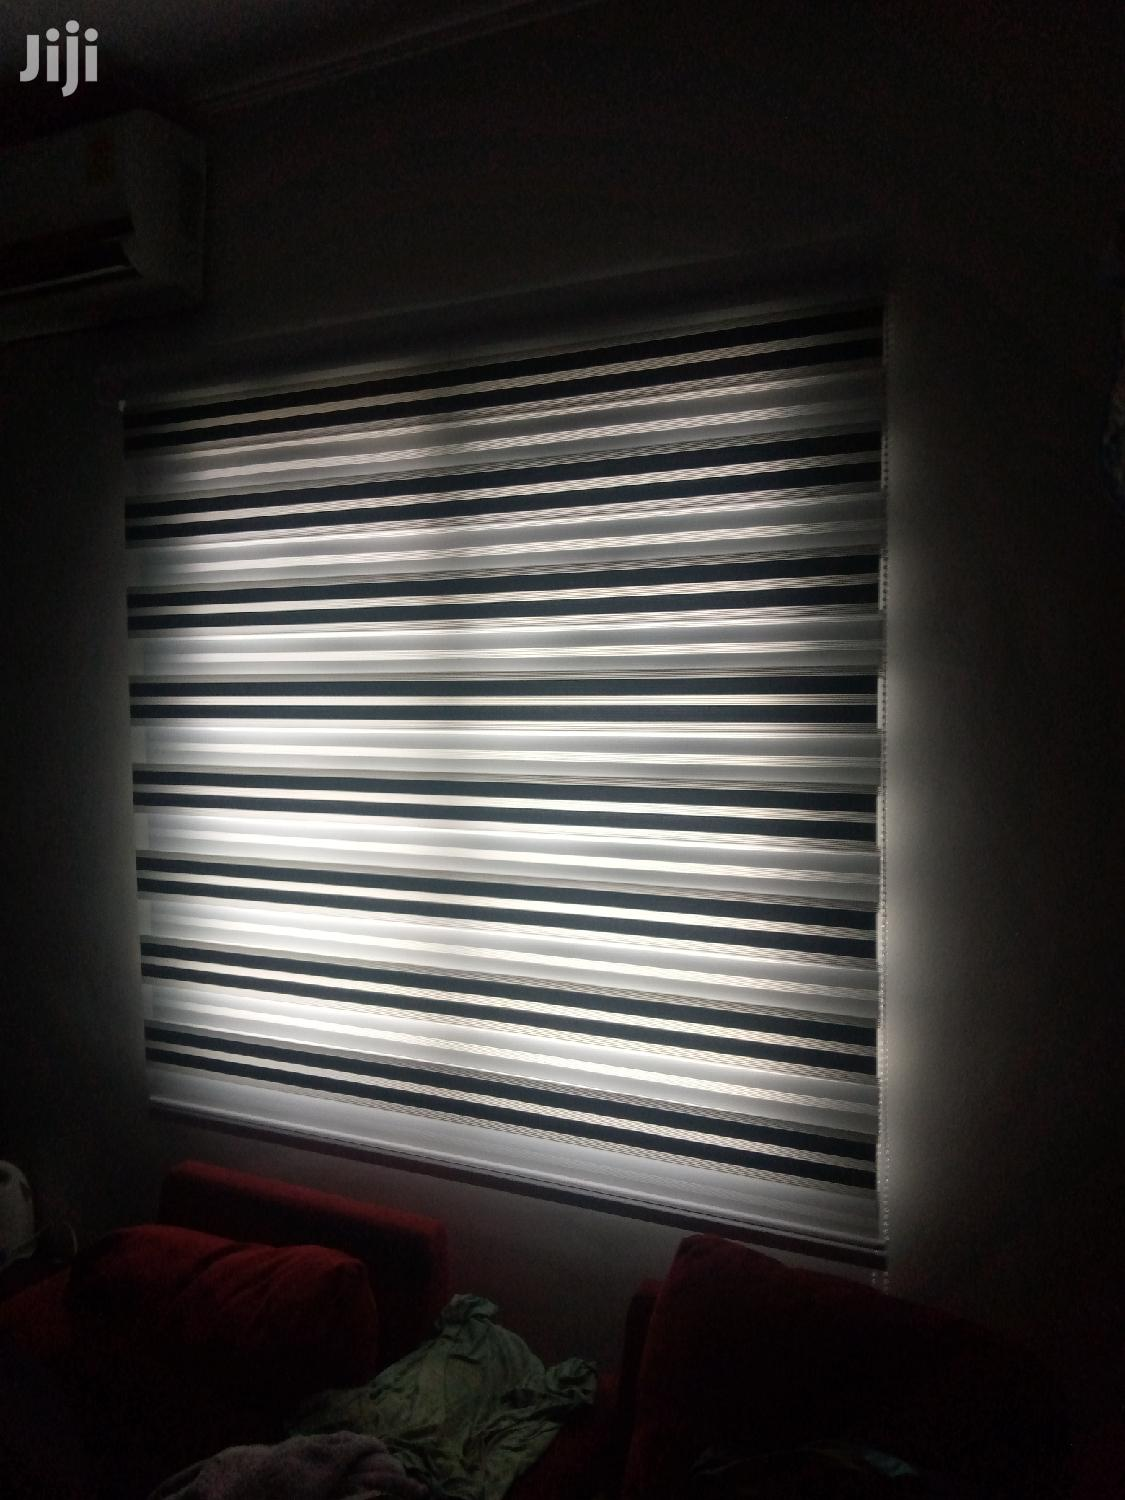 Black and White Zebra Curtains Blinds | Home Accessories for sale in Kotobabi, Greater Accra, Ghana